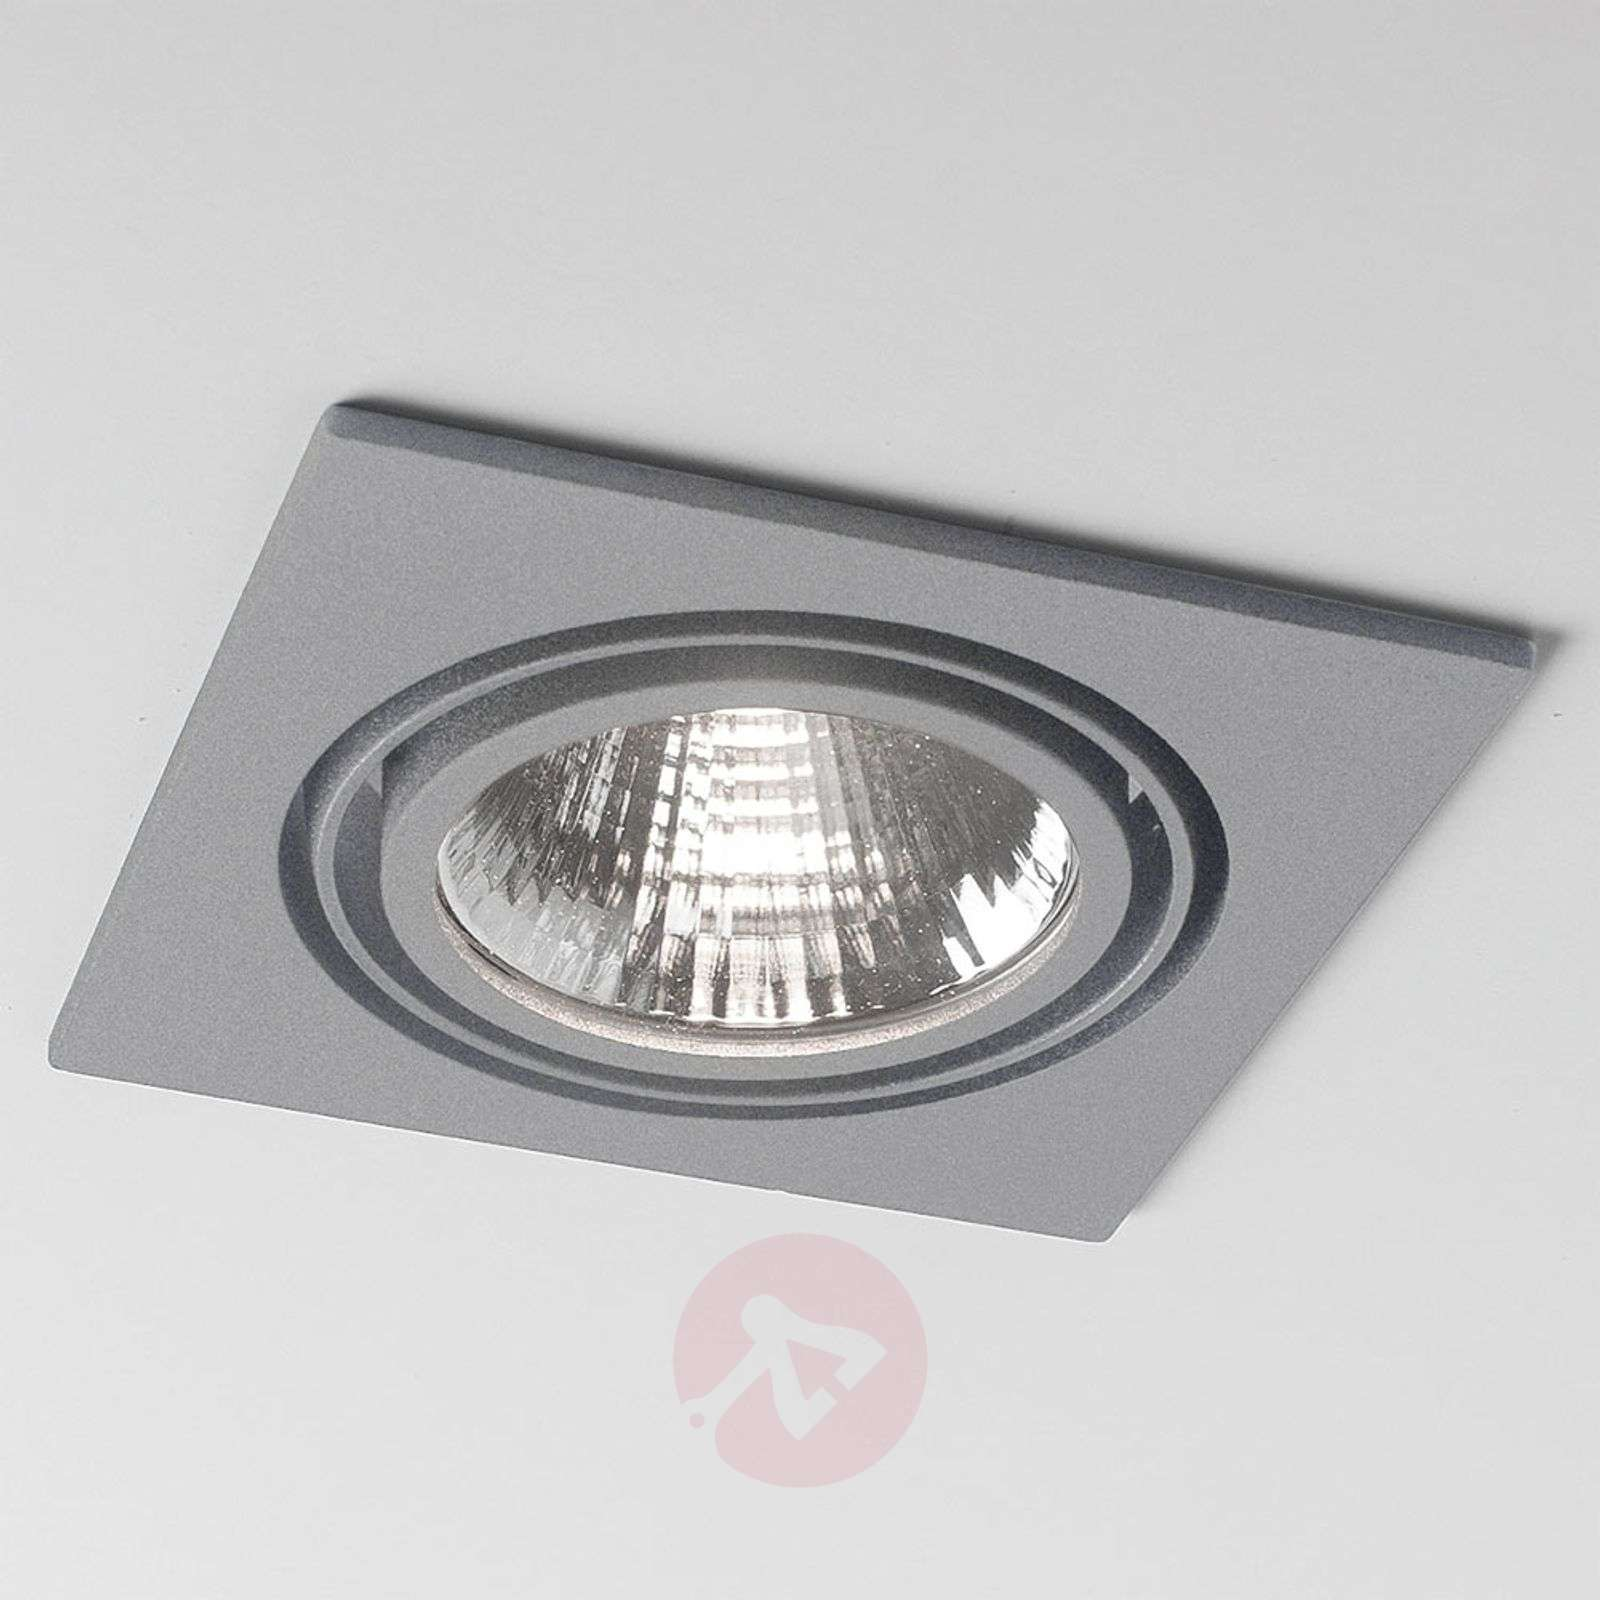 LED-uppospotti Now 2 Square, hopea, medium-6523718X-01